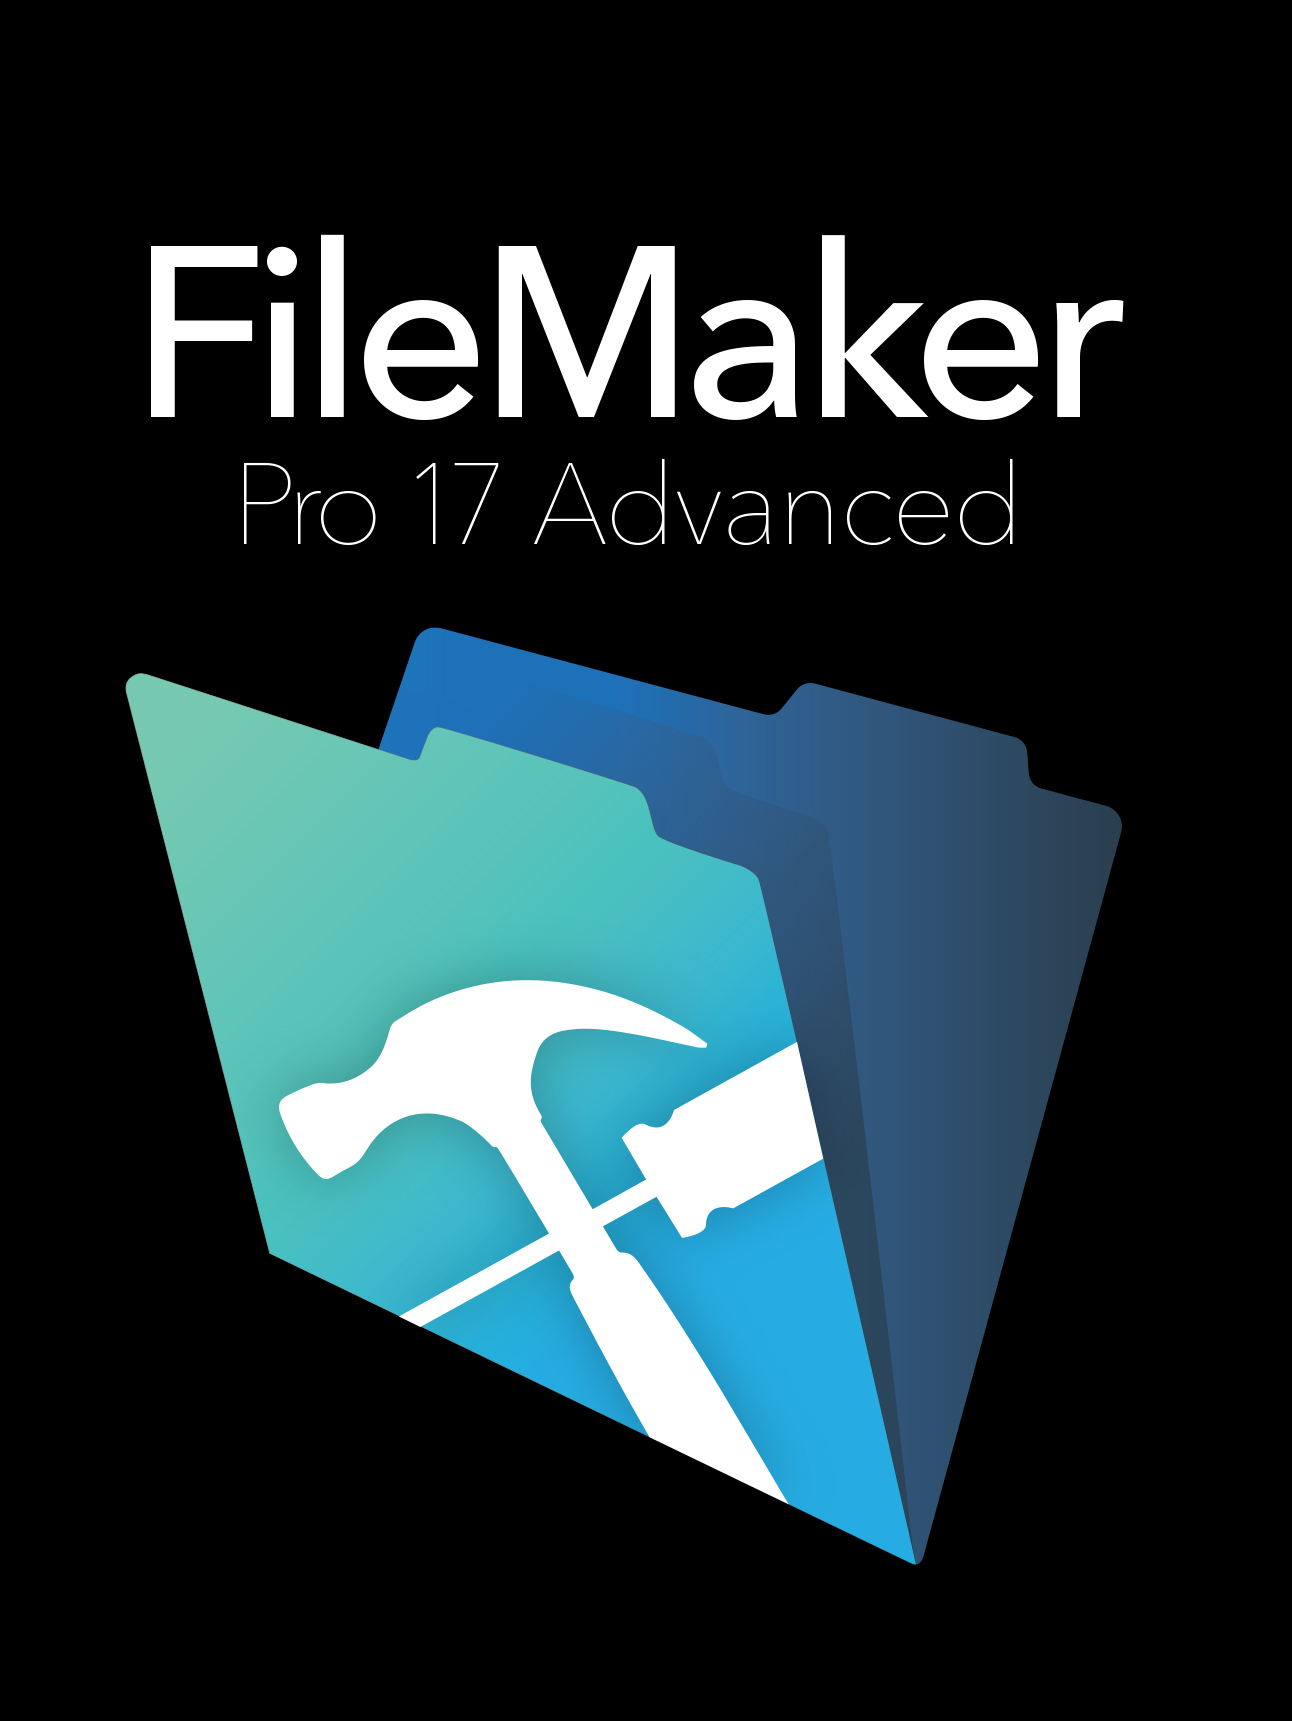 FileMaker Pro 17 Advanced Download  Mac/Win [Online Code] by FileMaker, Inc. - An Apple Subsidiary